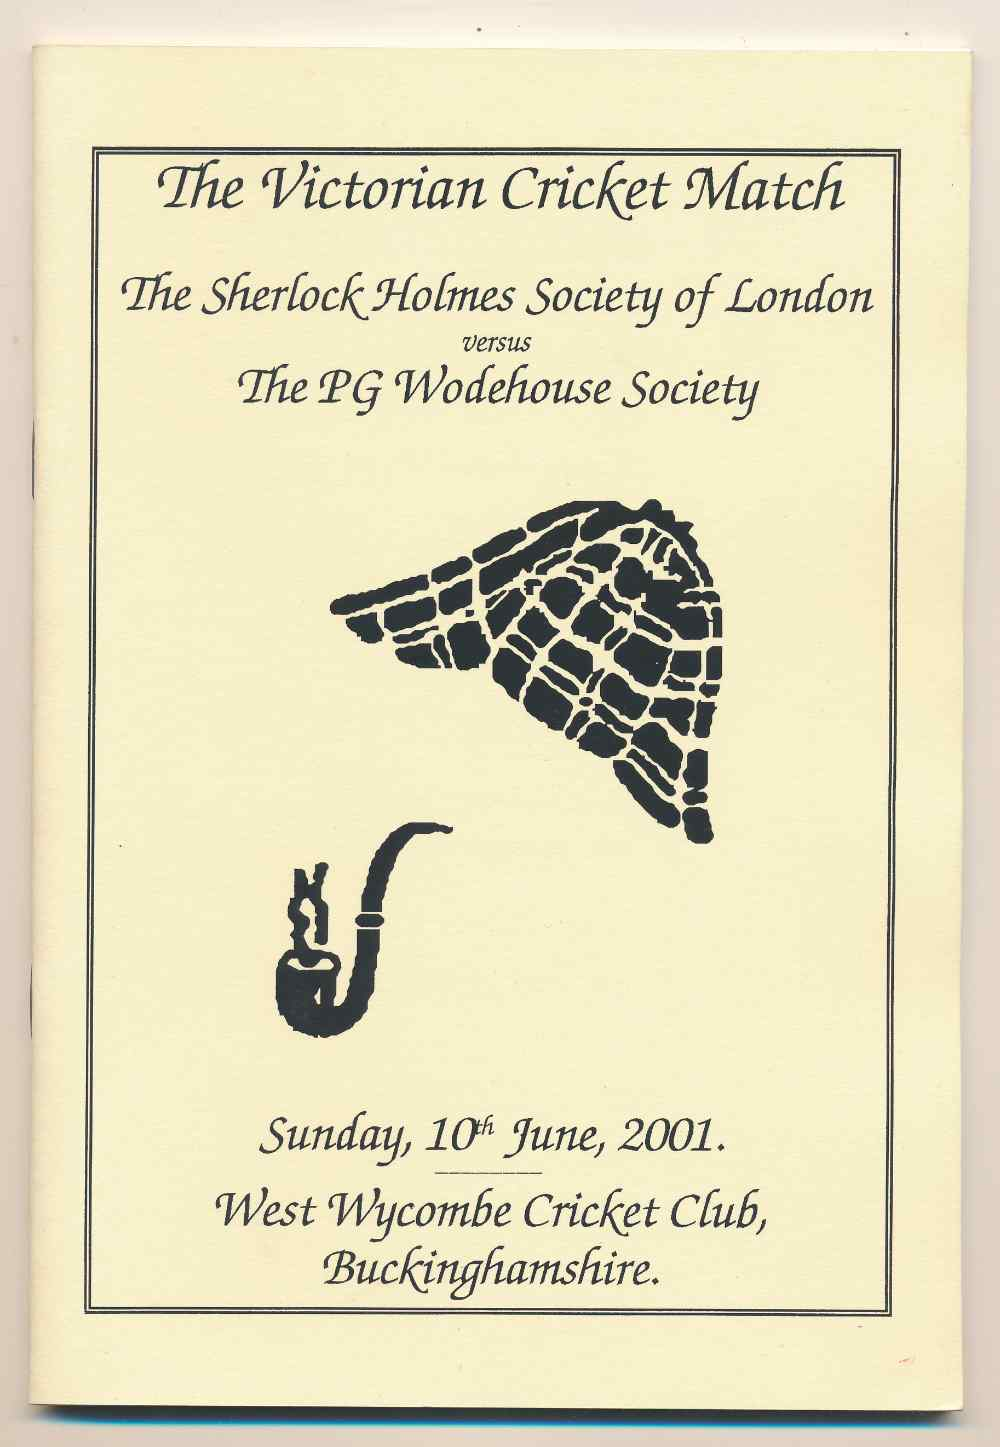 To illuminate the Victorian cricket match between the Sherlock Holmes Society of London and the PG Wodehouse Society held at West Wycombe Cricket Club, Buckinghamshire on Sunday, 10th June, 2001 (and amuse in the event that rain stops play)